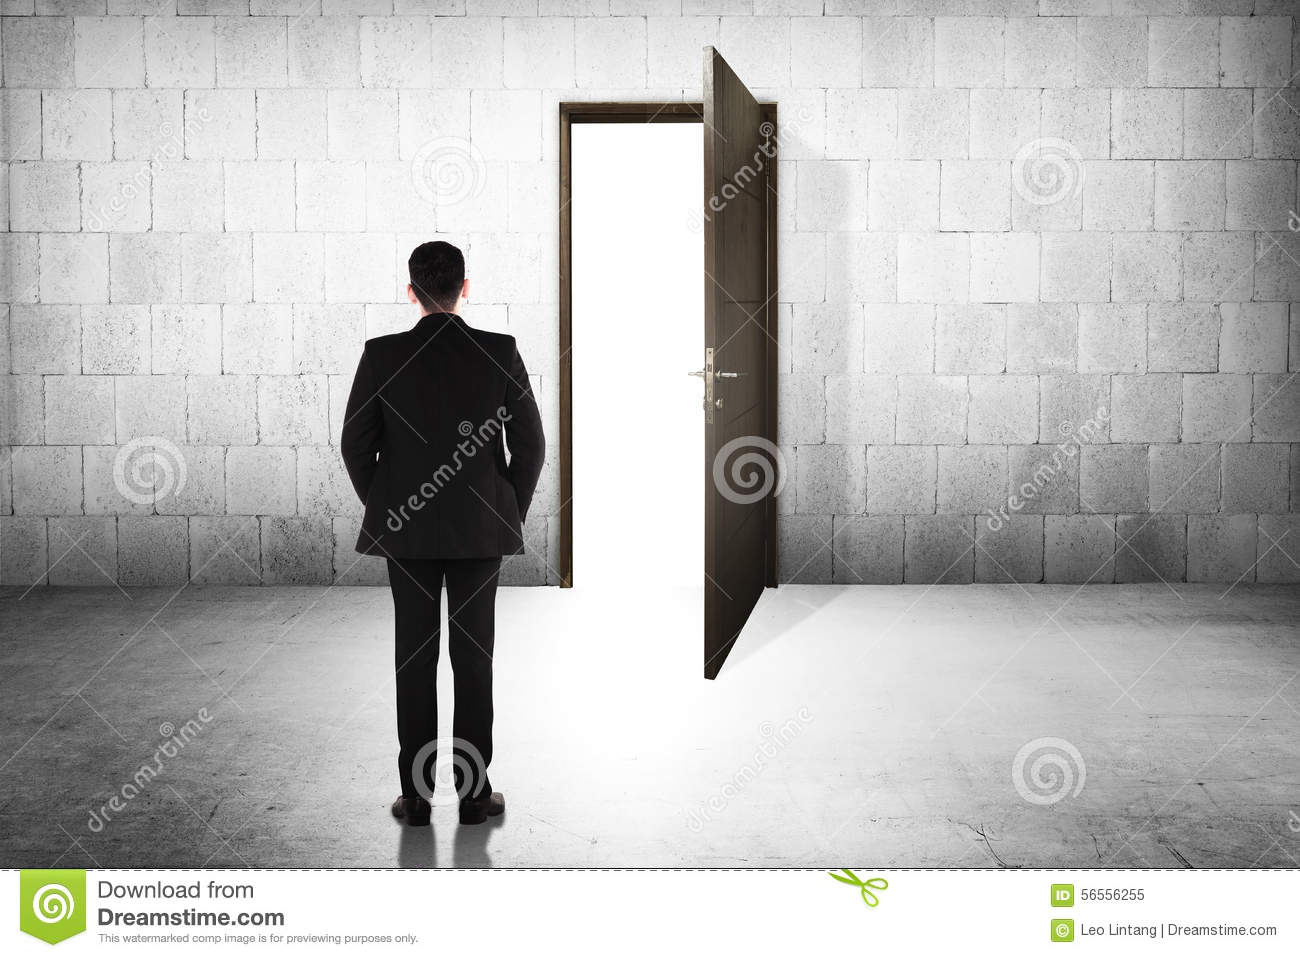 Business Man Going To The Open Door Stock Image  Image of